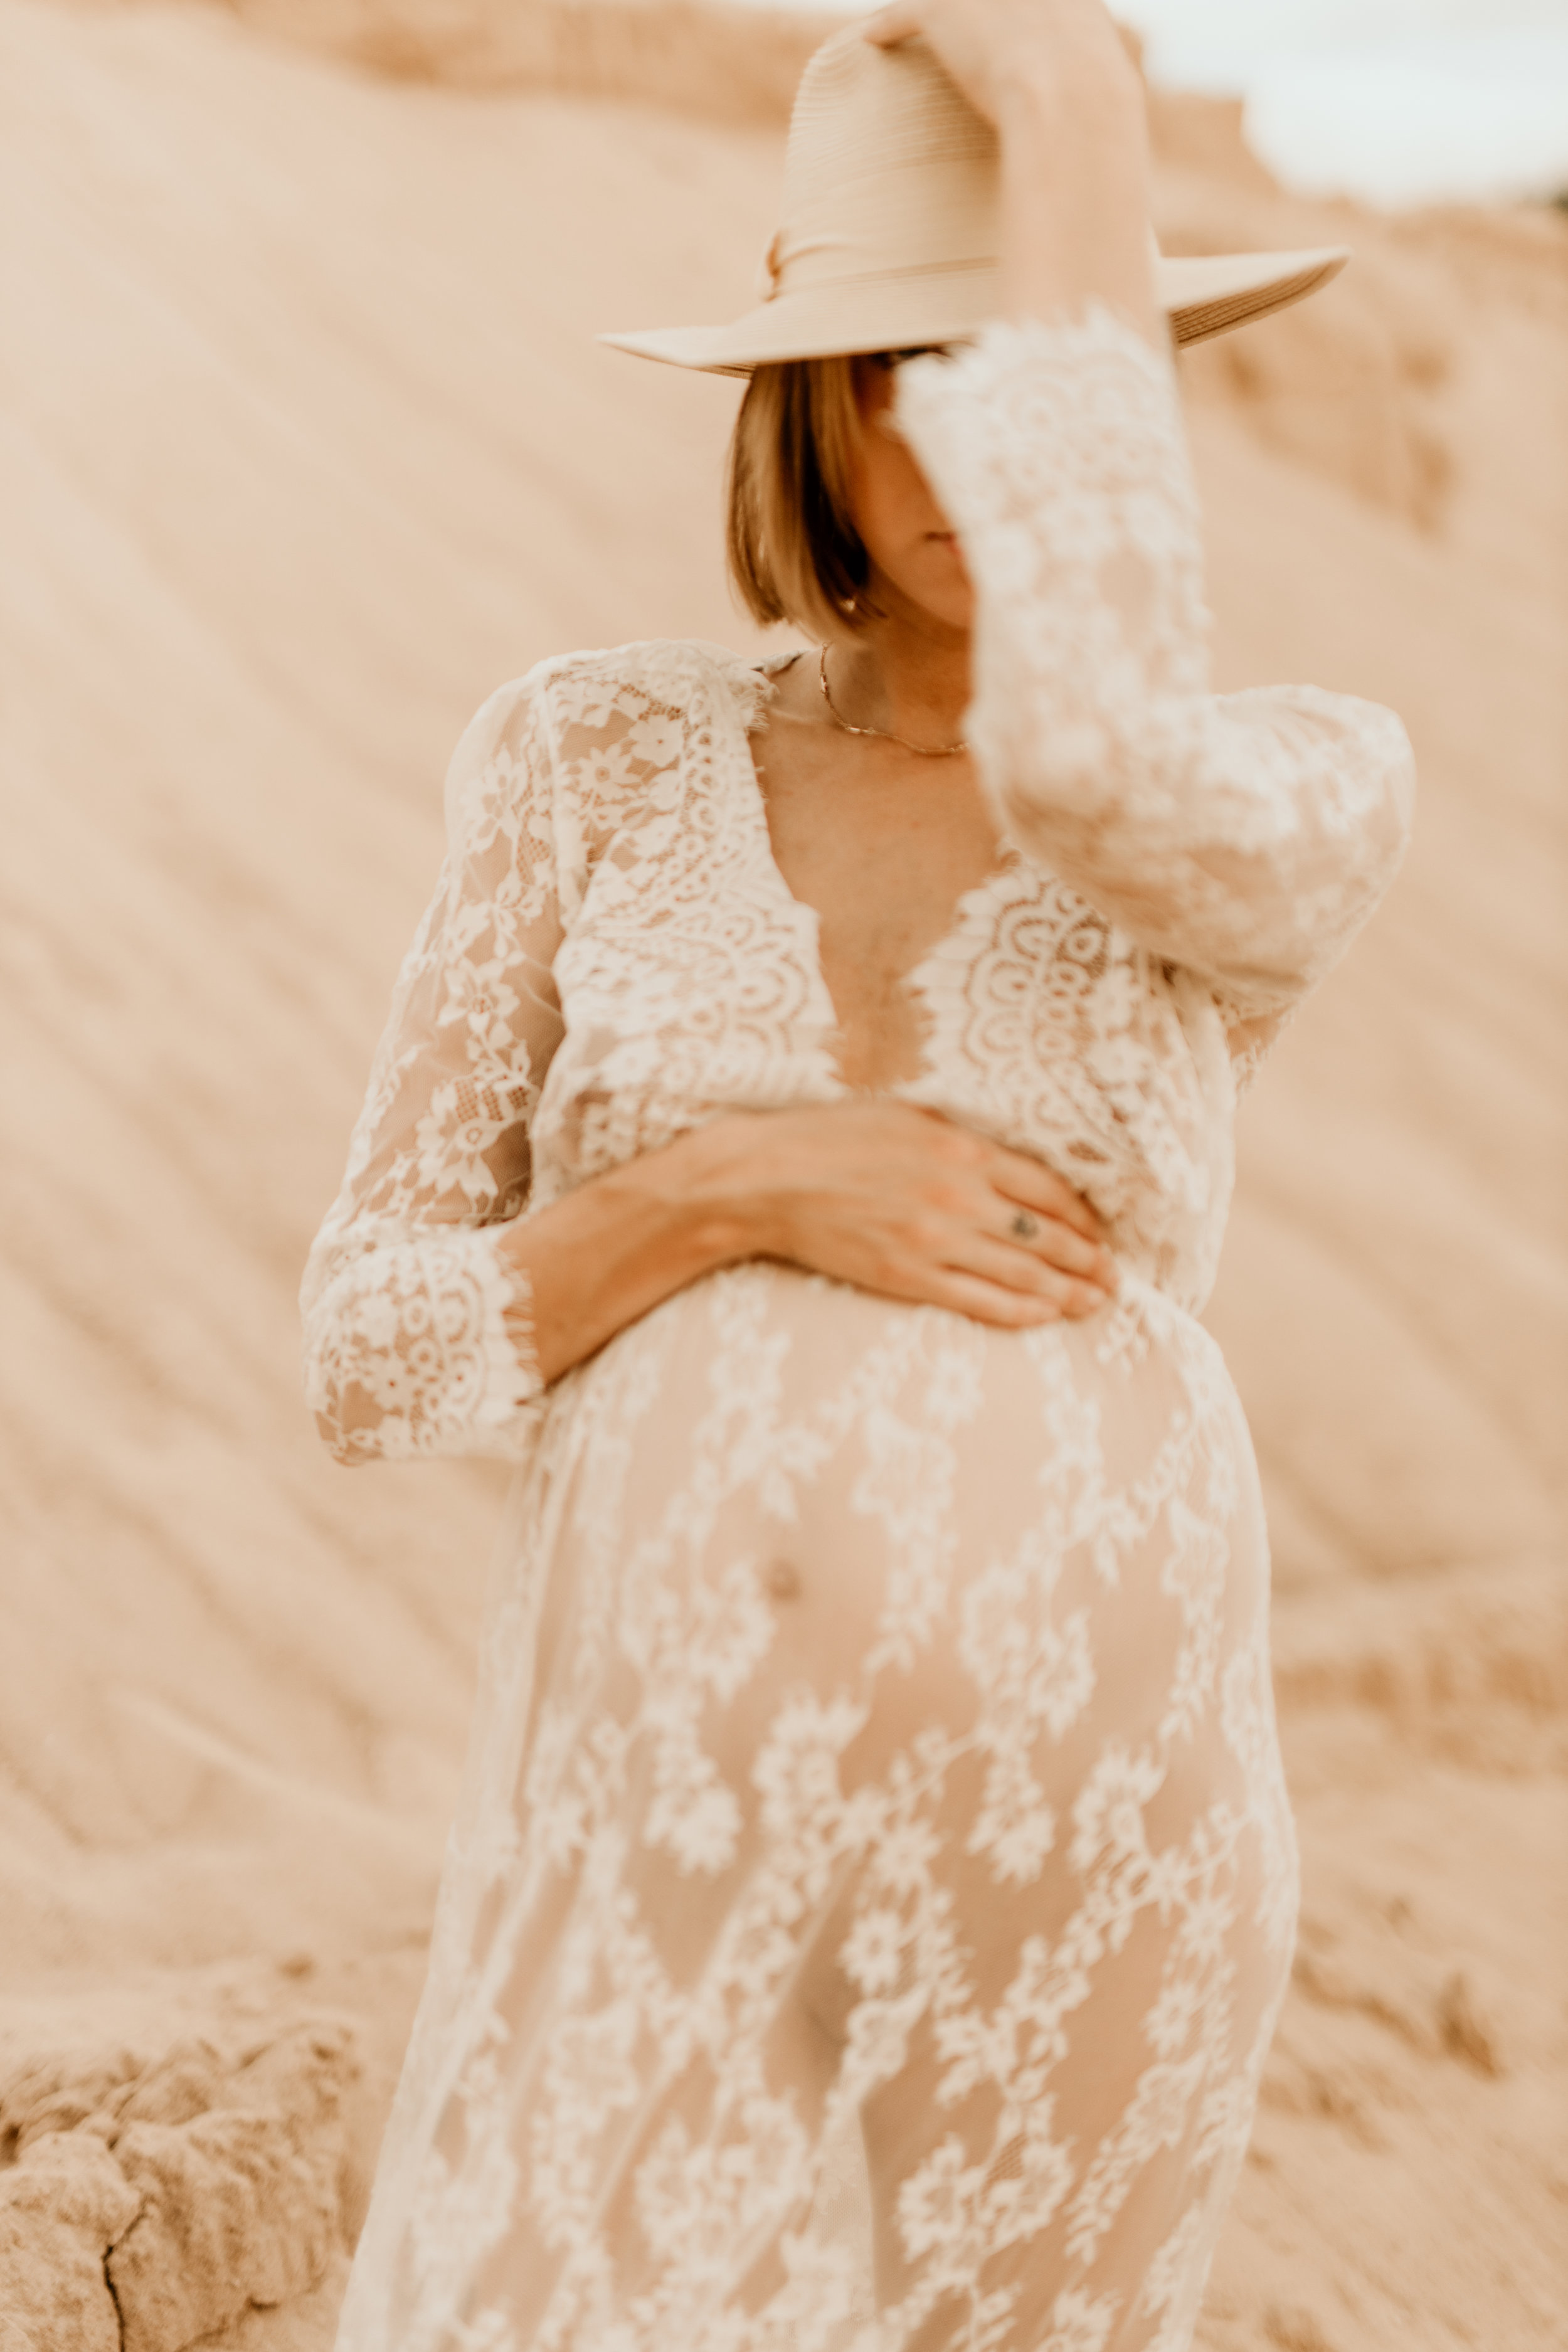 maternity-desert-conway-central-arkansas-bridal-photographer-little-rock-photography-outdoor-wedding-boho-fashion-engagement-elopement-bouquet-bride-soiree-magazine-photoshoot-arkansasbride-pinnacle-mountain-car-vintage